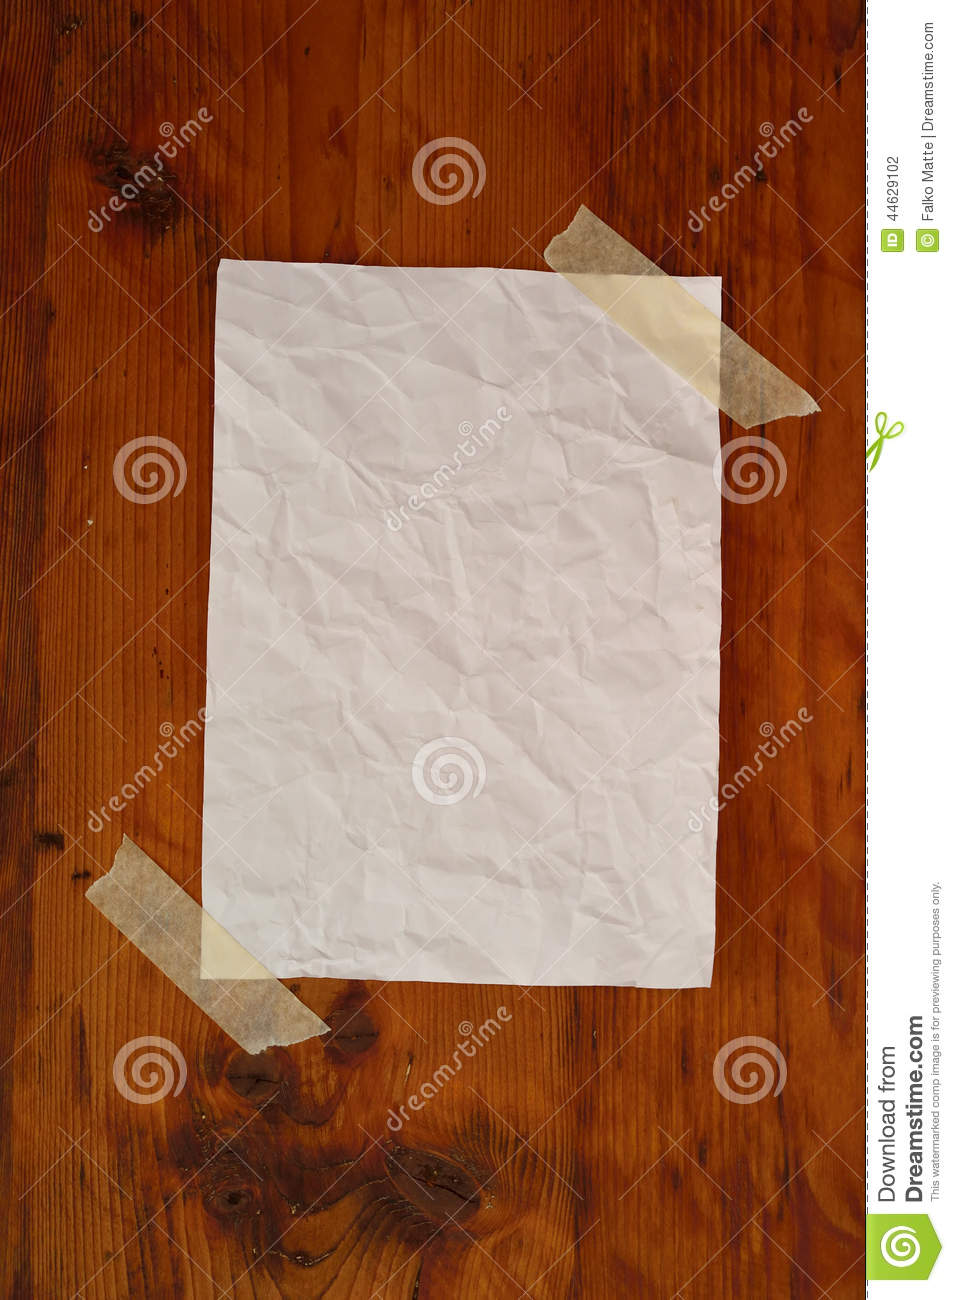 Blank white paper on wood grain surface